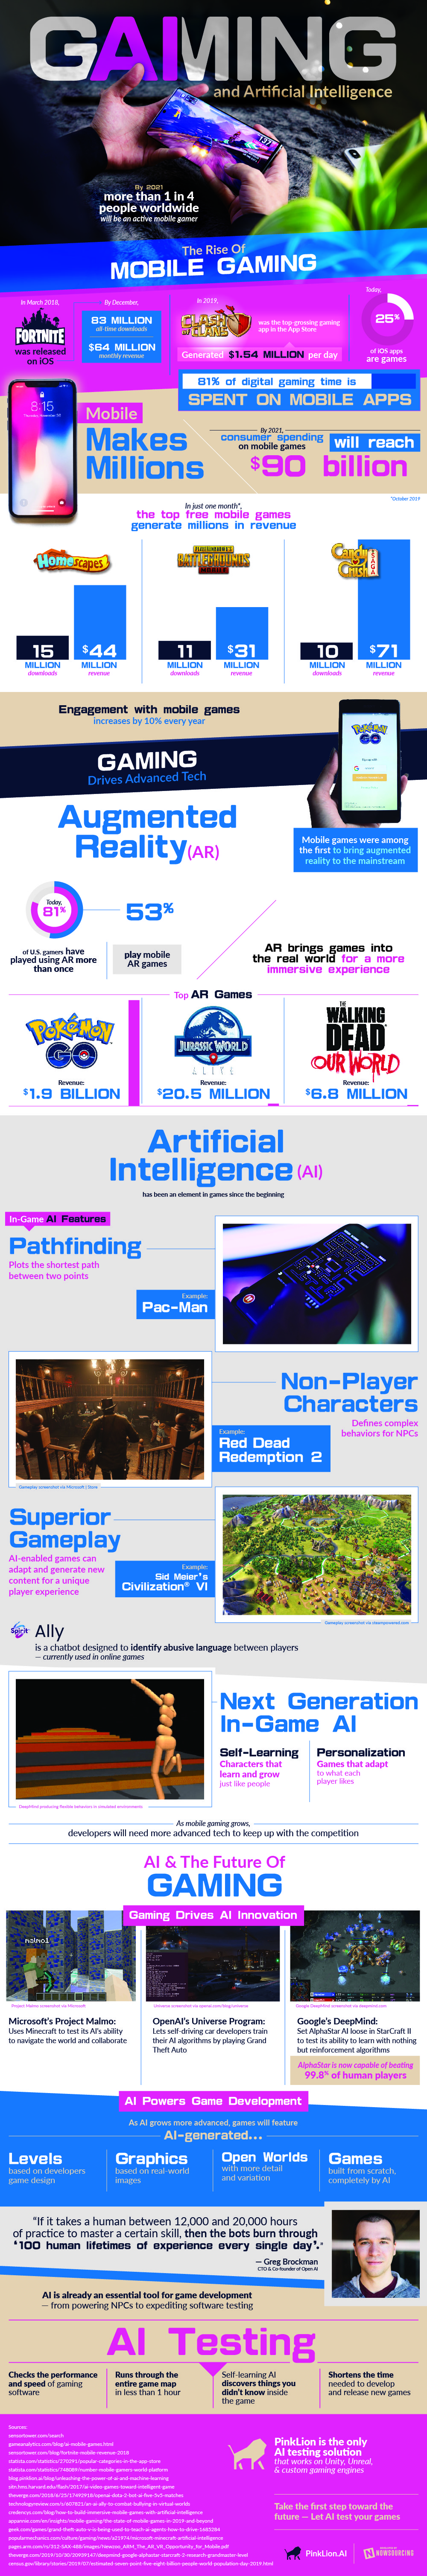 The Future of Gaming with AI 2